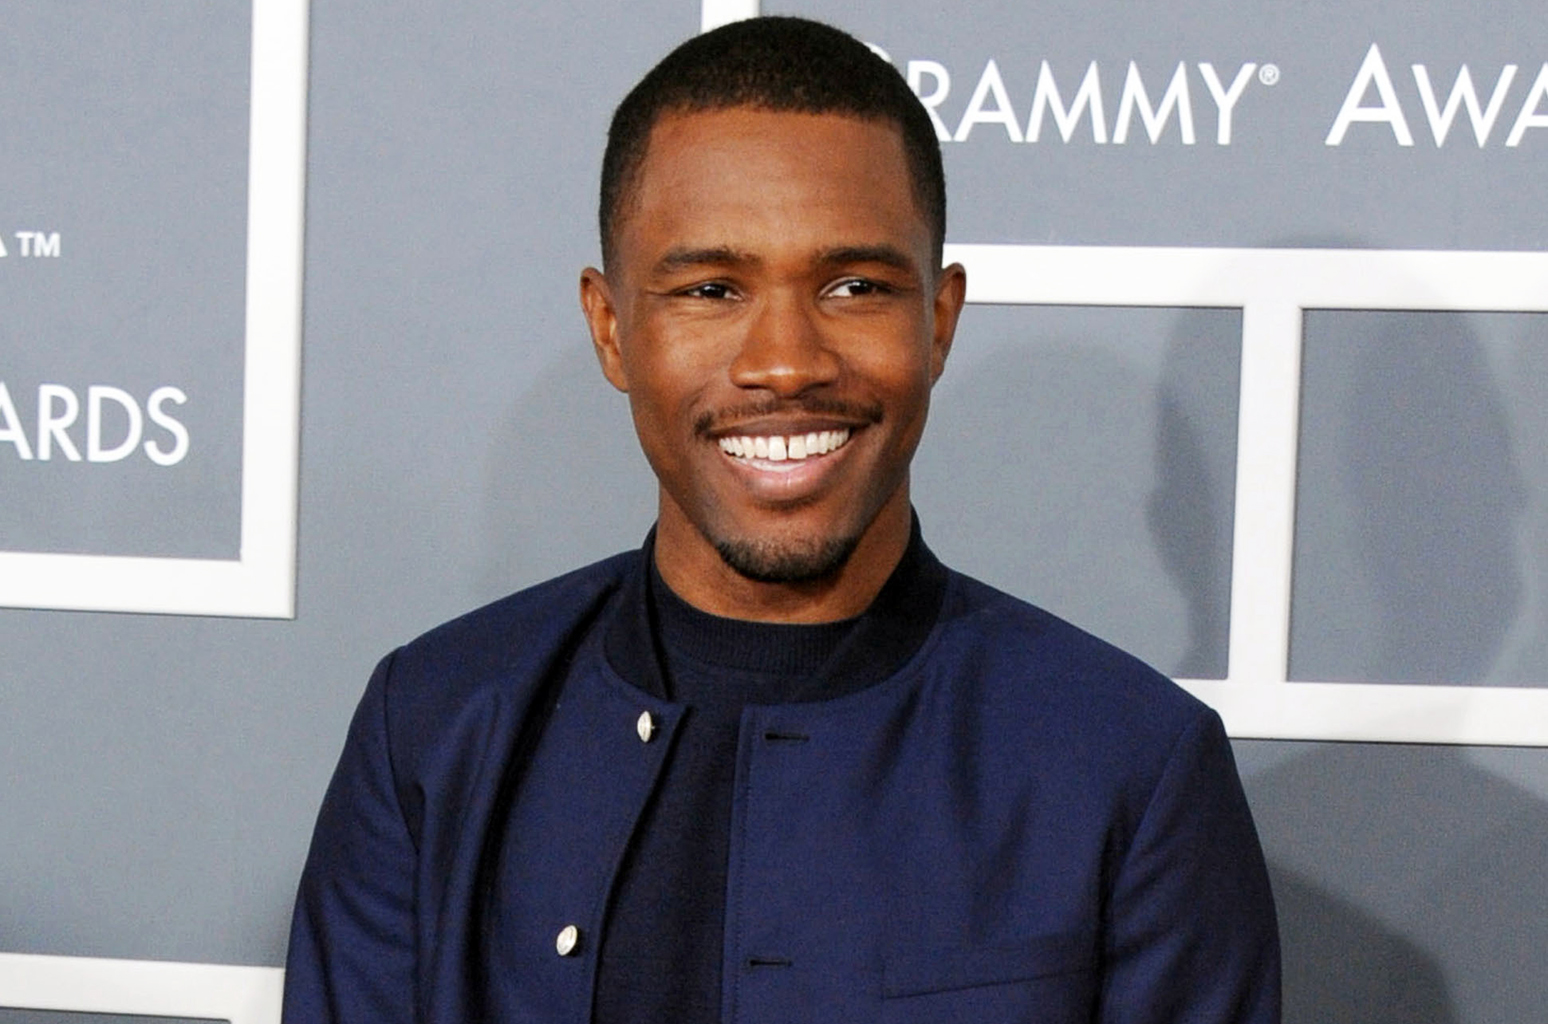 Frank Ocean Beats His Father in $14.5 Million Defamation Suit